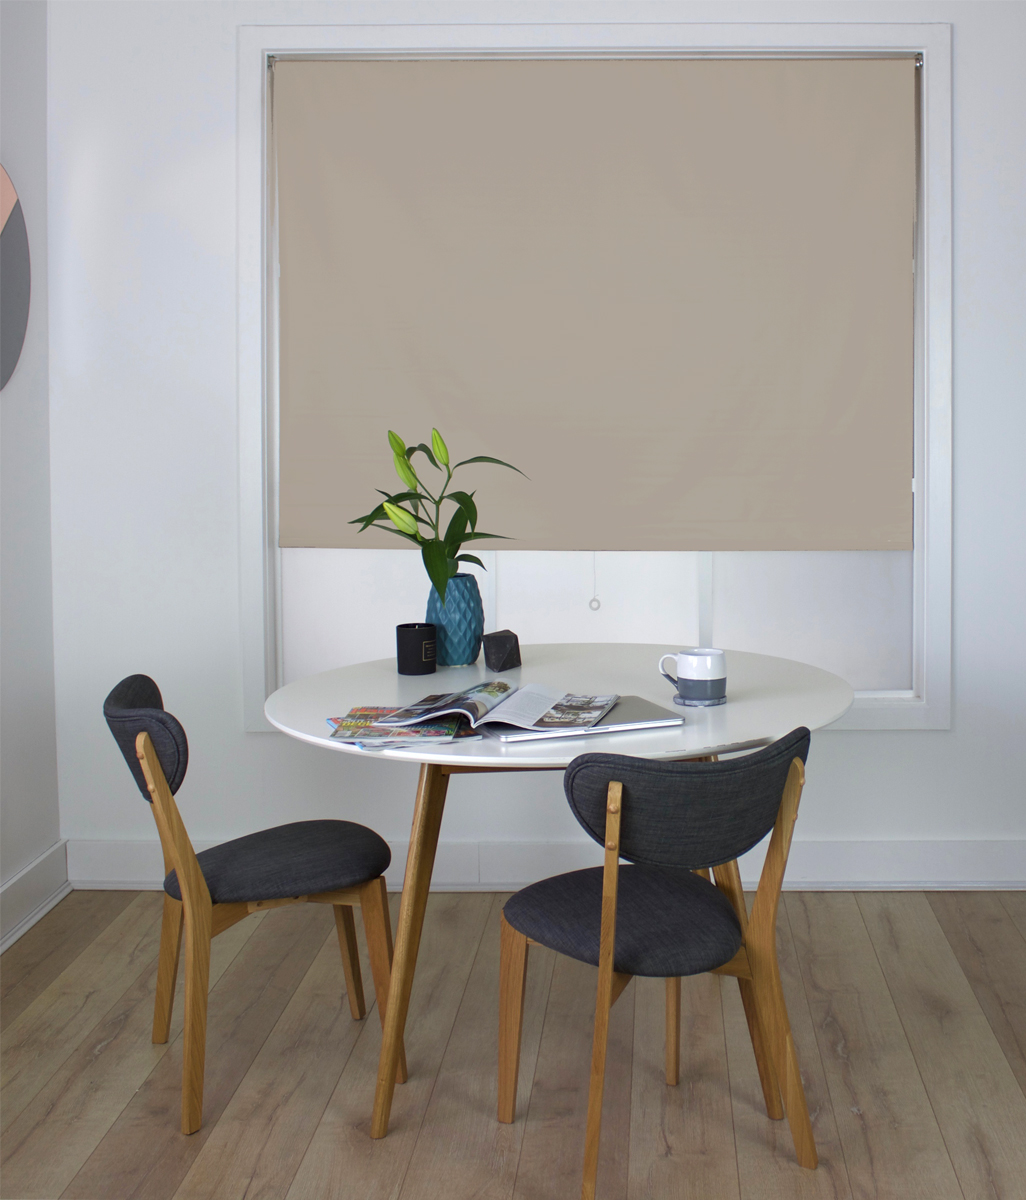 Easy Peel PVC Roller Blind Latte